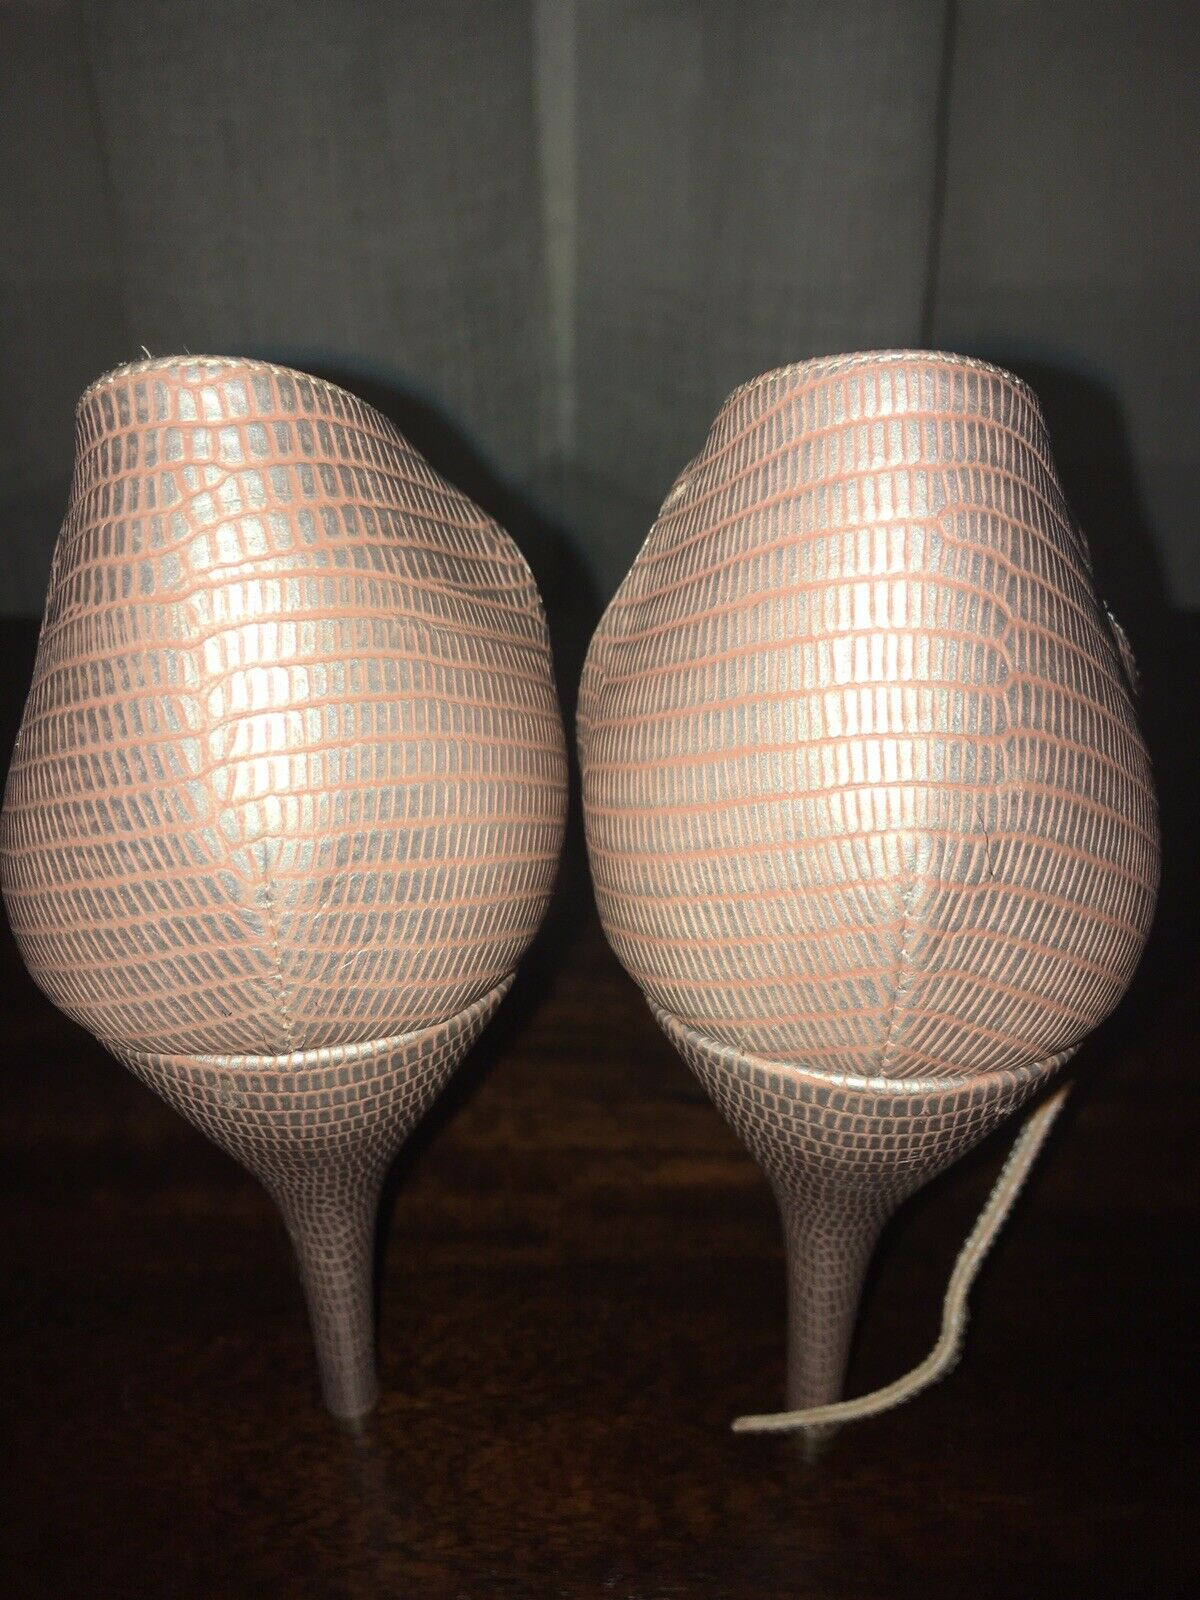 Escada Lizard Skin Pump Size 37.5 In In In Light Pink color Retail Price 675.00 0588d3